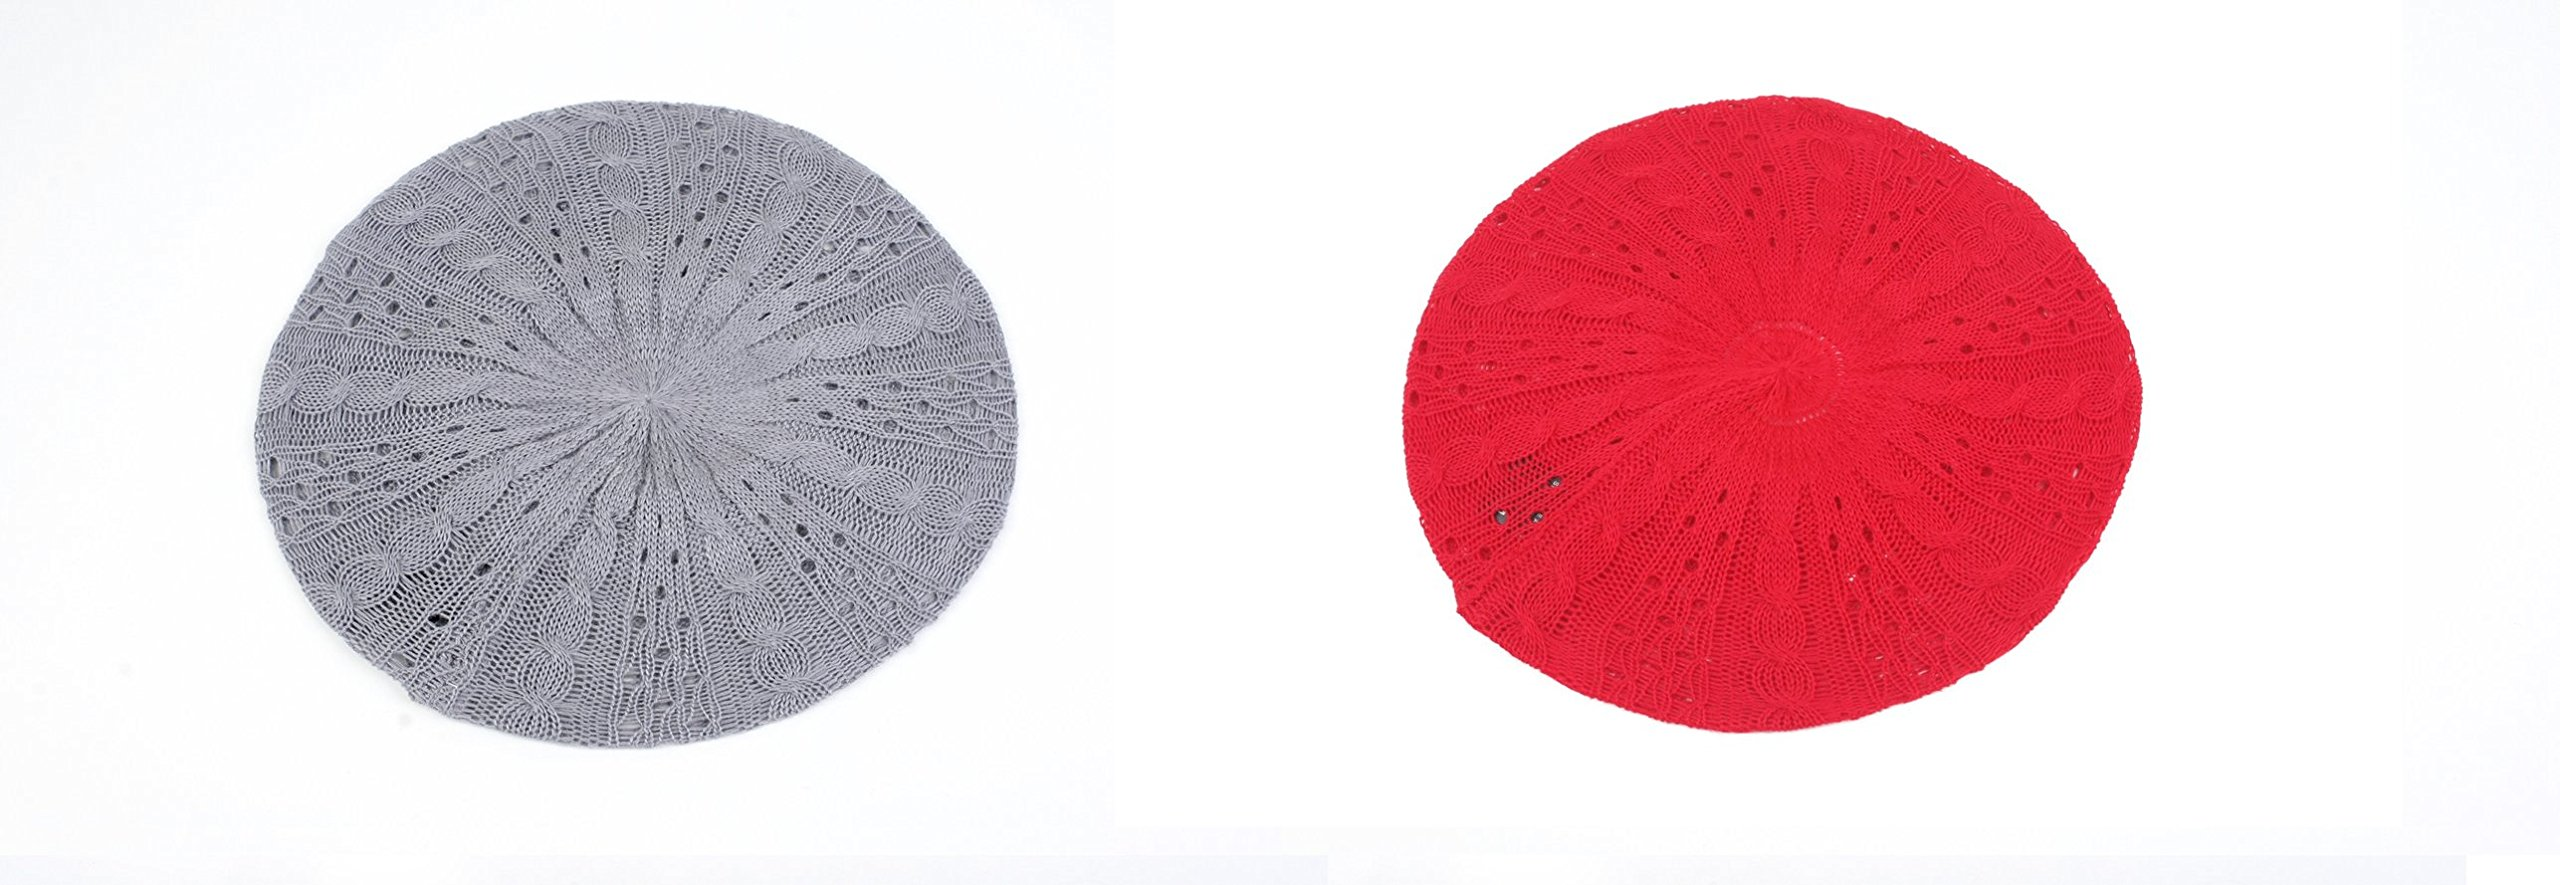 Women's Light Beret Knitted Style for Spring Summer Fall 139HB (2 Pcs Gray & Red)